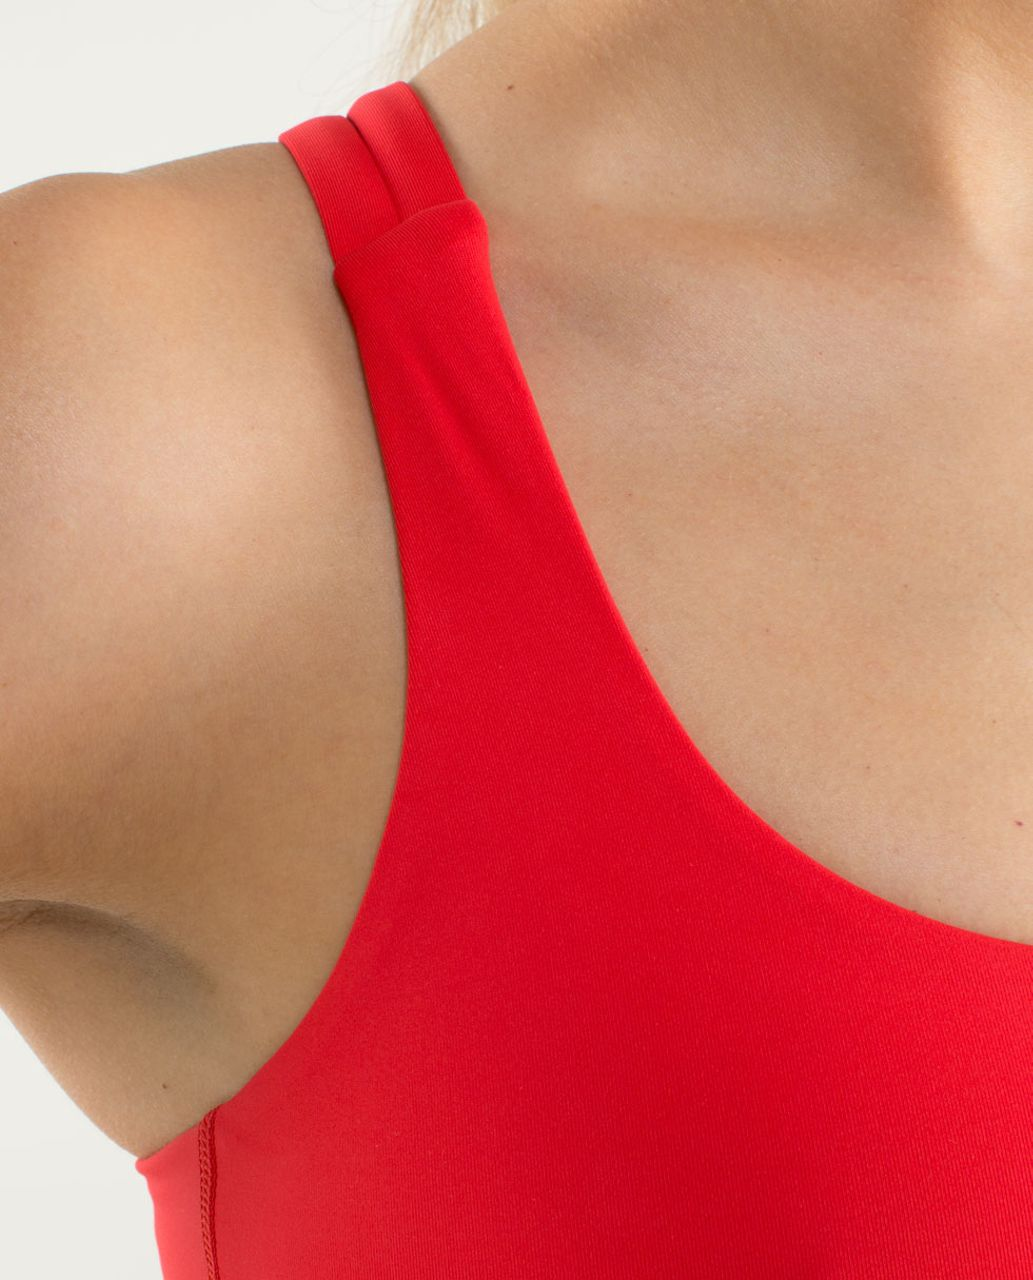 Lululemon Energy Bra - Love Red